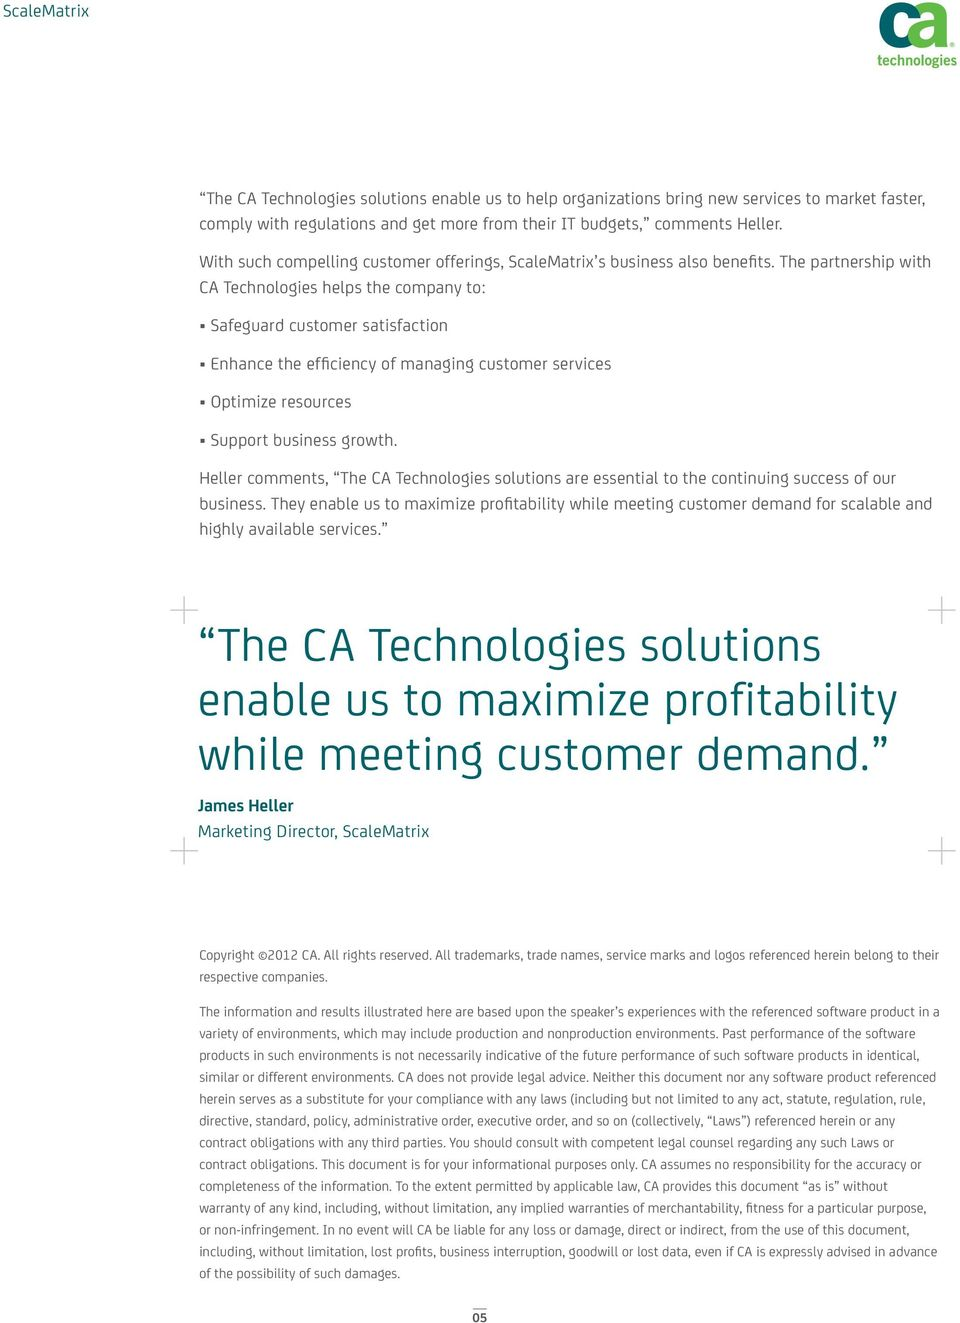 The partnership with CA Technologies helps the company to: Safeguard customer satisfaction Enhance the efficiency of managing customer services Optimize resources Support business growth.